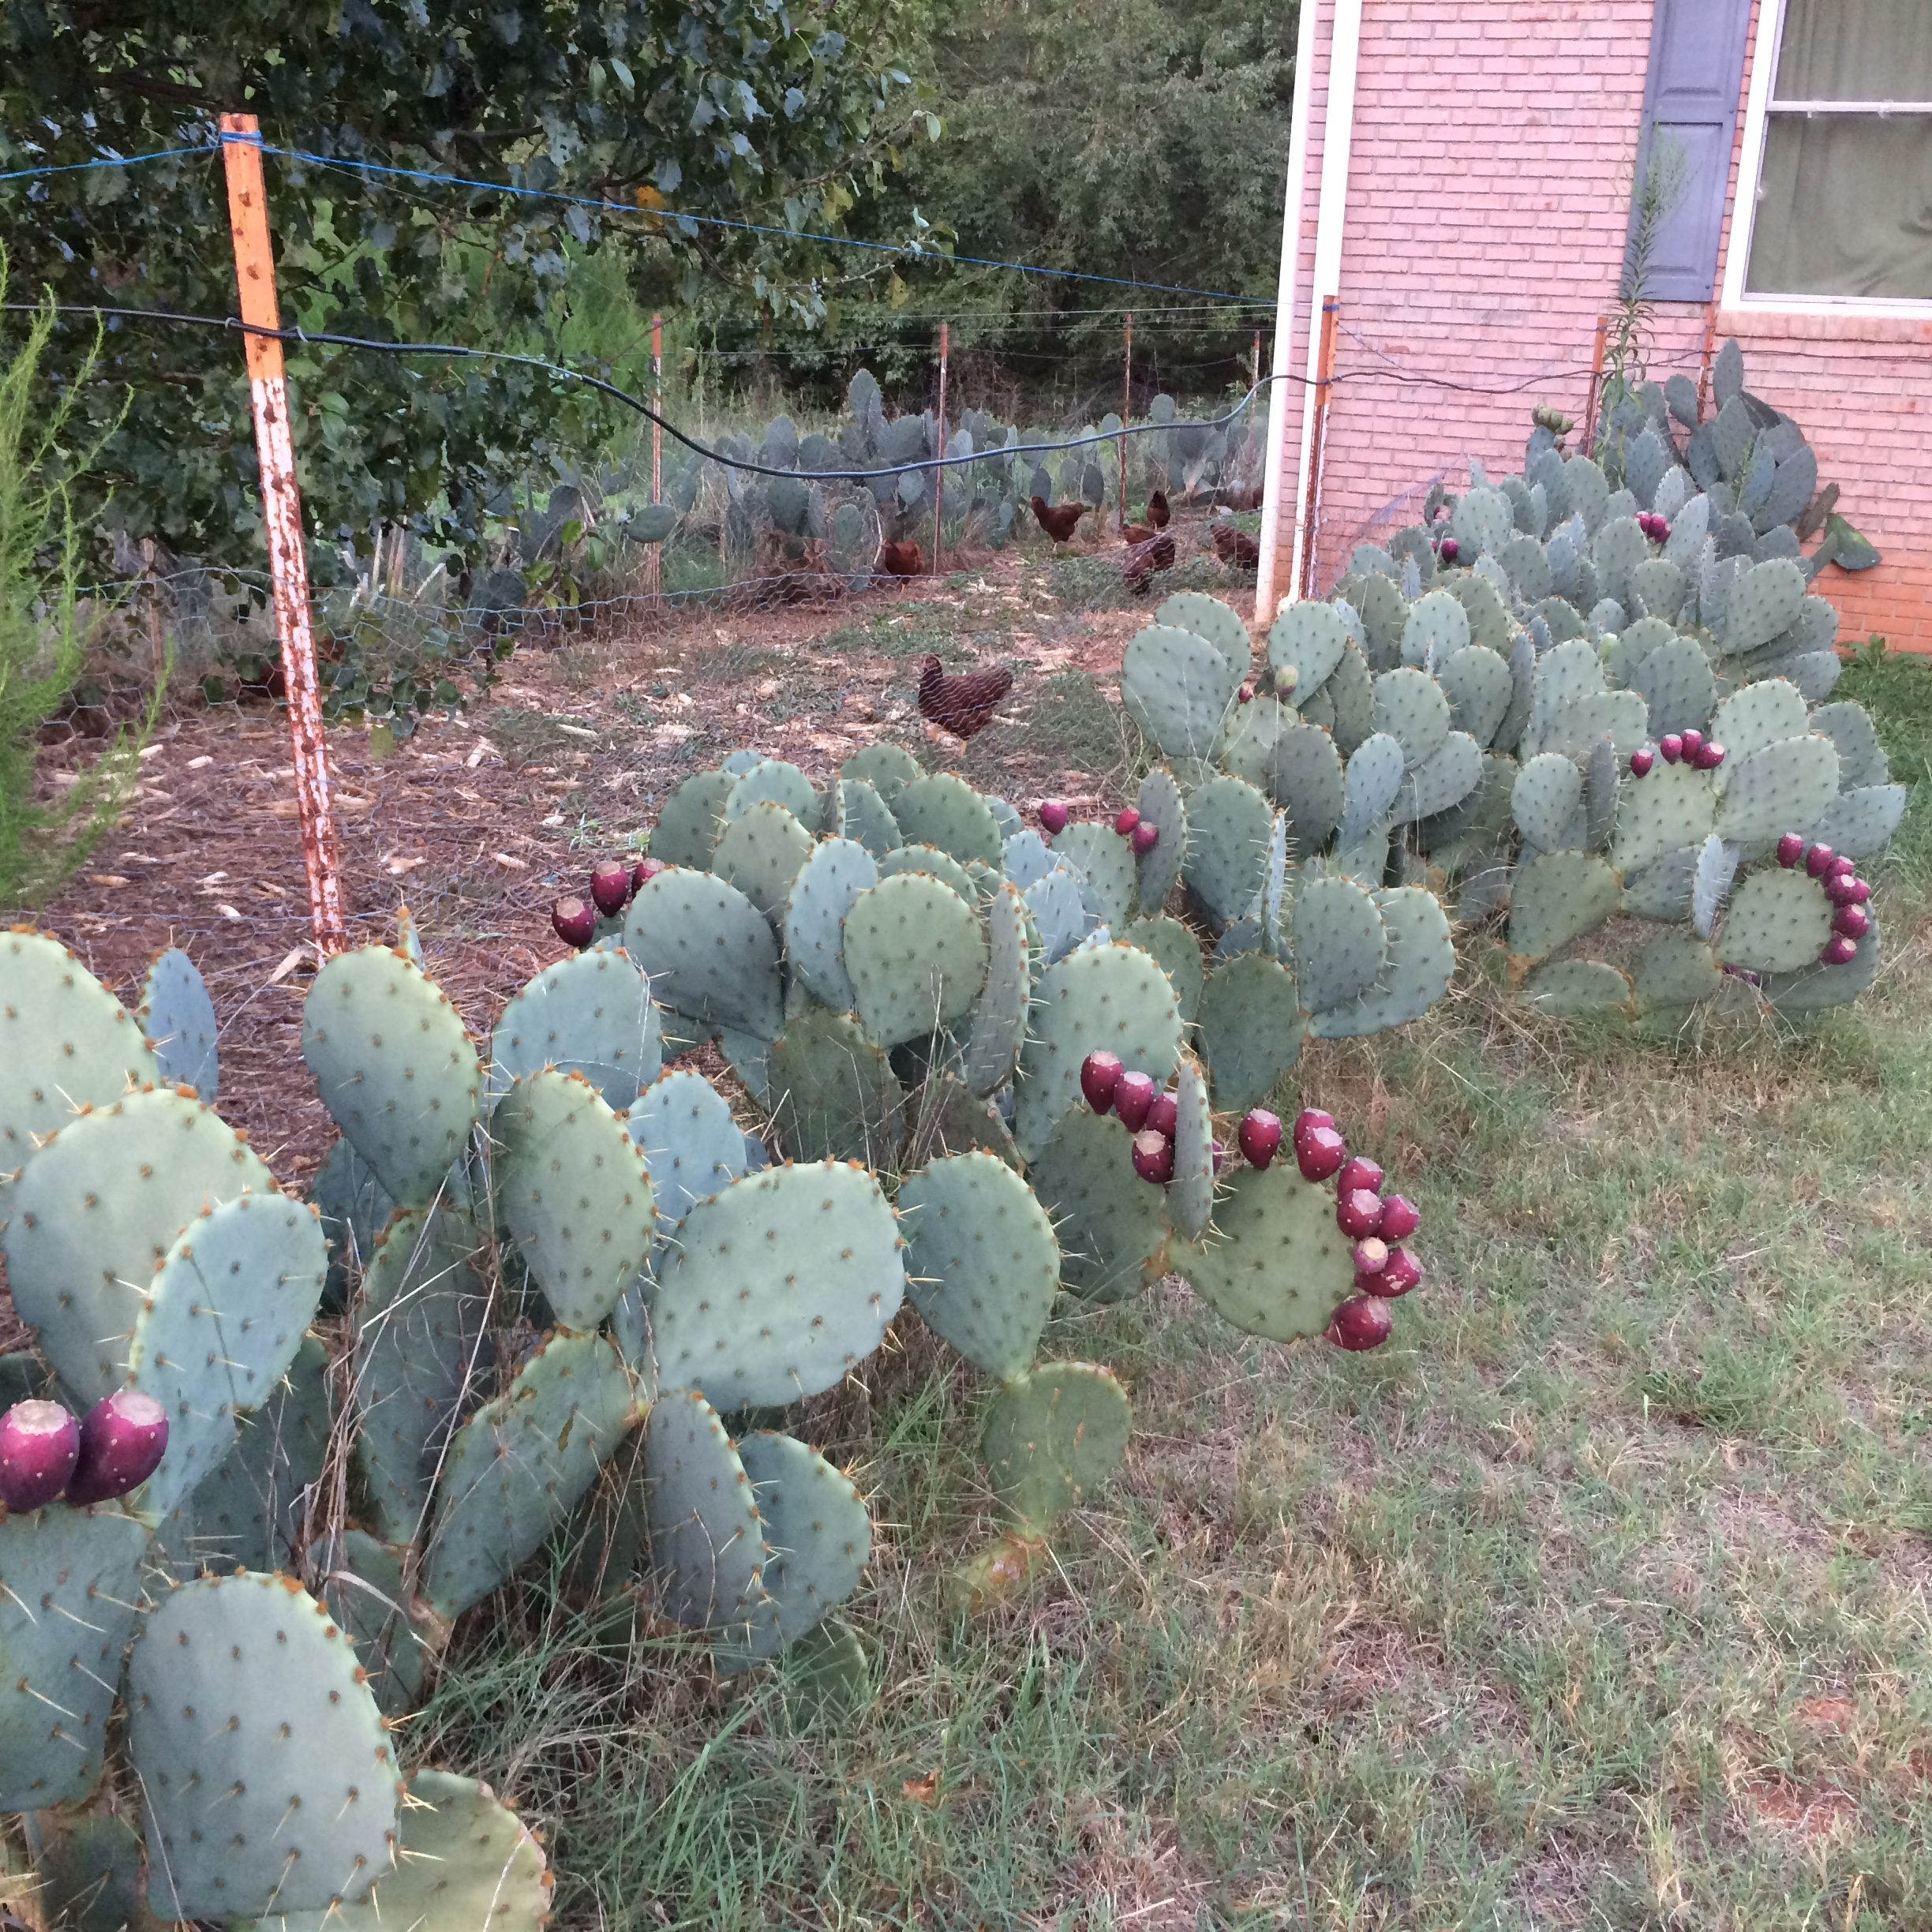 Prickly Pear Cactus Multi Use Plant For Farms And